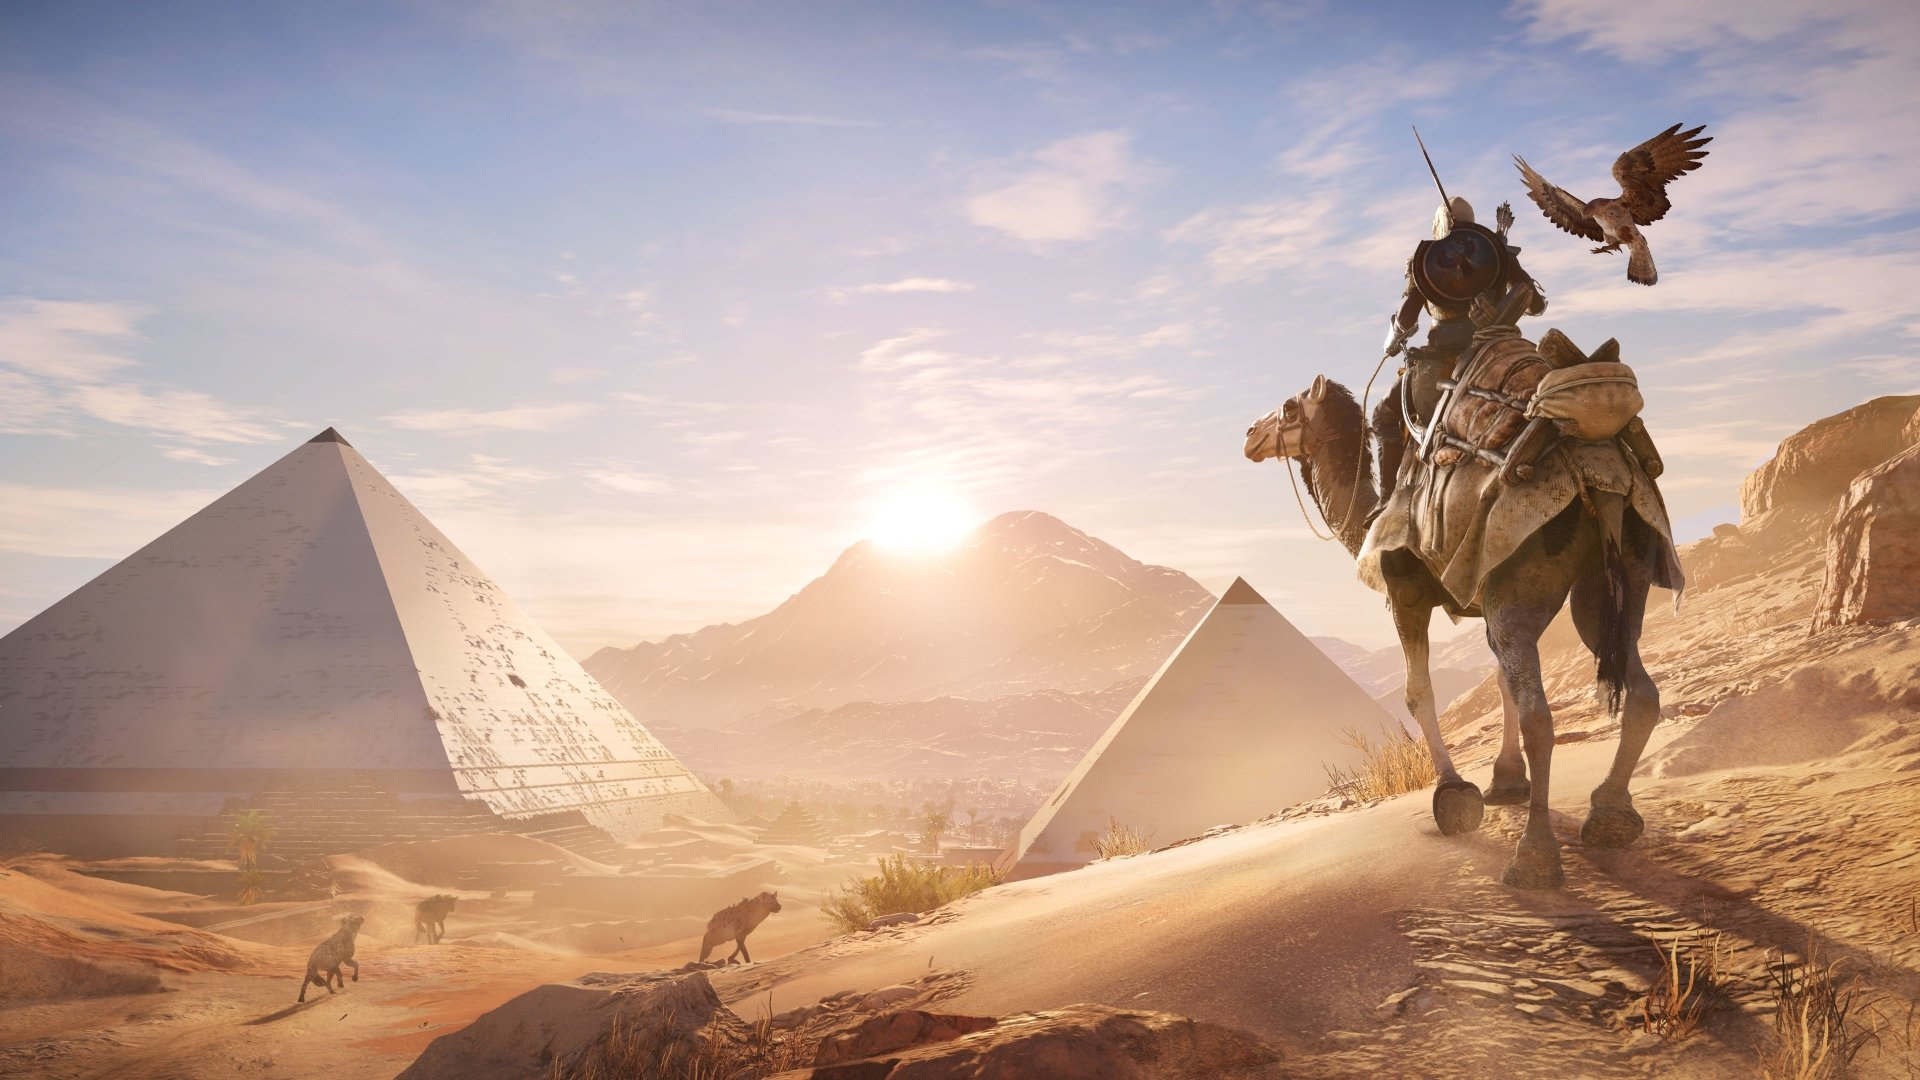 Video Game - Assassin's Creed Origins  Bayek Of Siwa Senu (Assassin's Creed) Camel Eagle Wallpaper